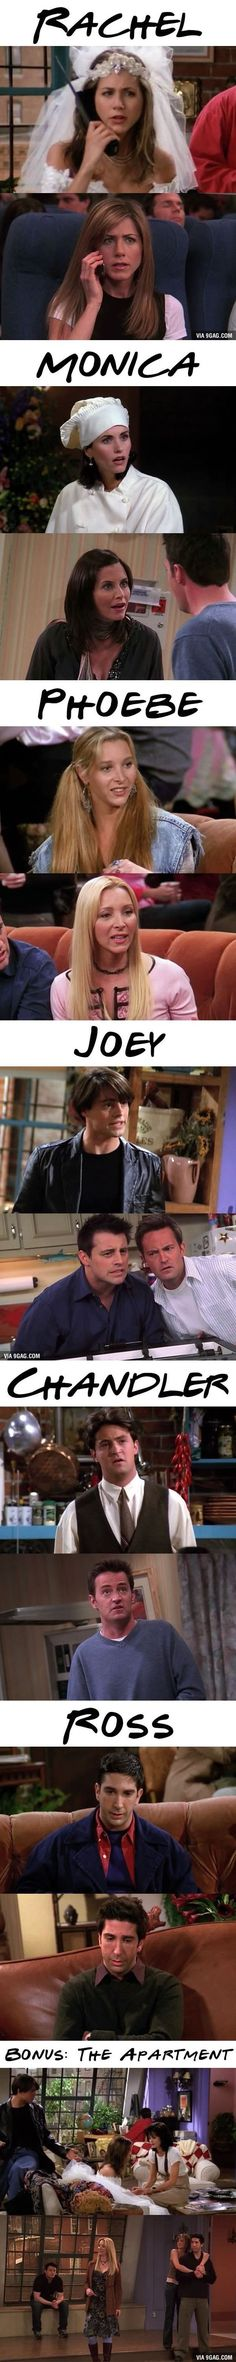 """The Cast Of """"Friends"""" On The First Episode Vs. The Last Episode Friends is the Best Show Ever. Friends made us laugh, it made us cry. It thought all of us so much about friendship and friends. Friends Tv Show, Friends 1994, The Cast Of Friends, Tv: Friends, Serie Friends, Friends Episodes, Friends Moments, I Love My Friends, Friends Forever"""